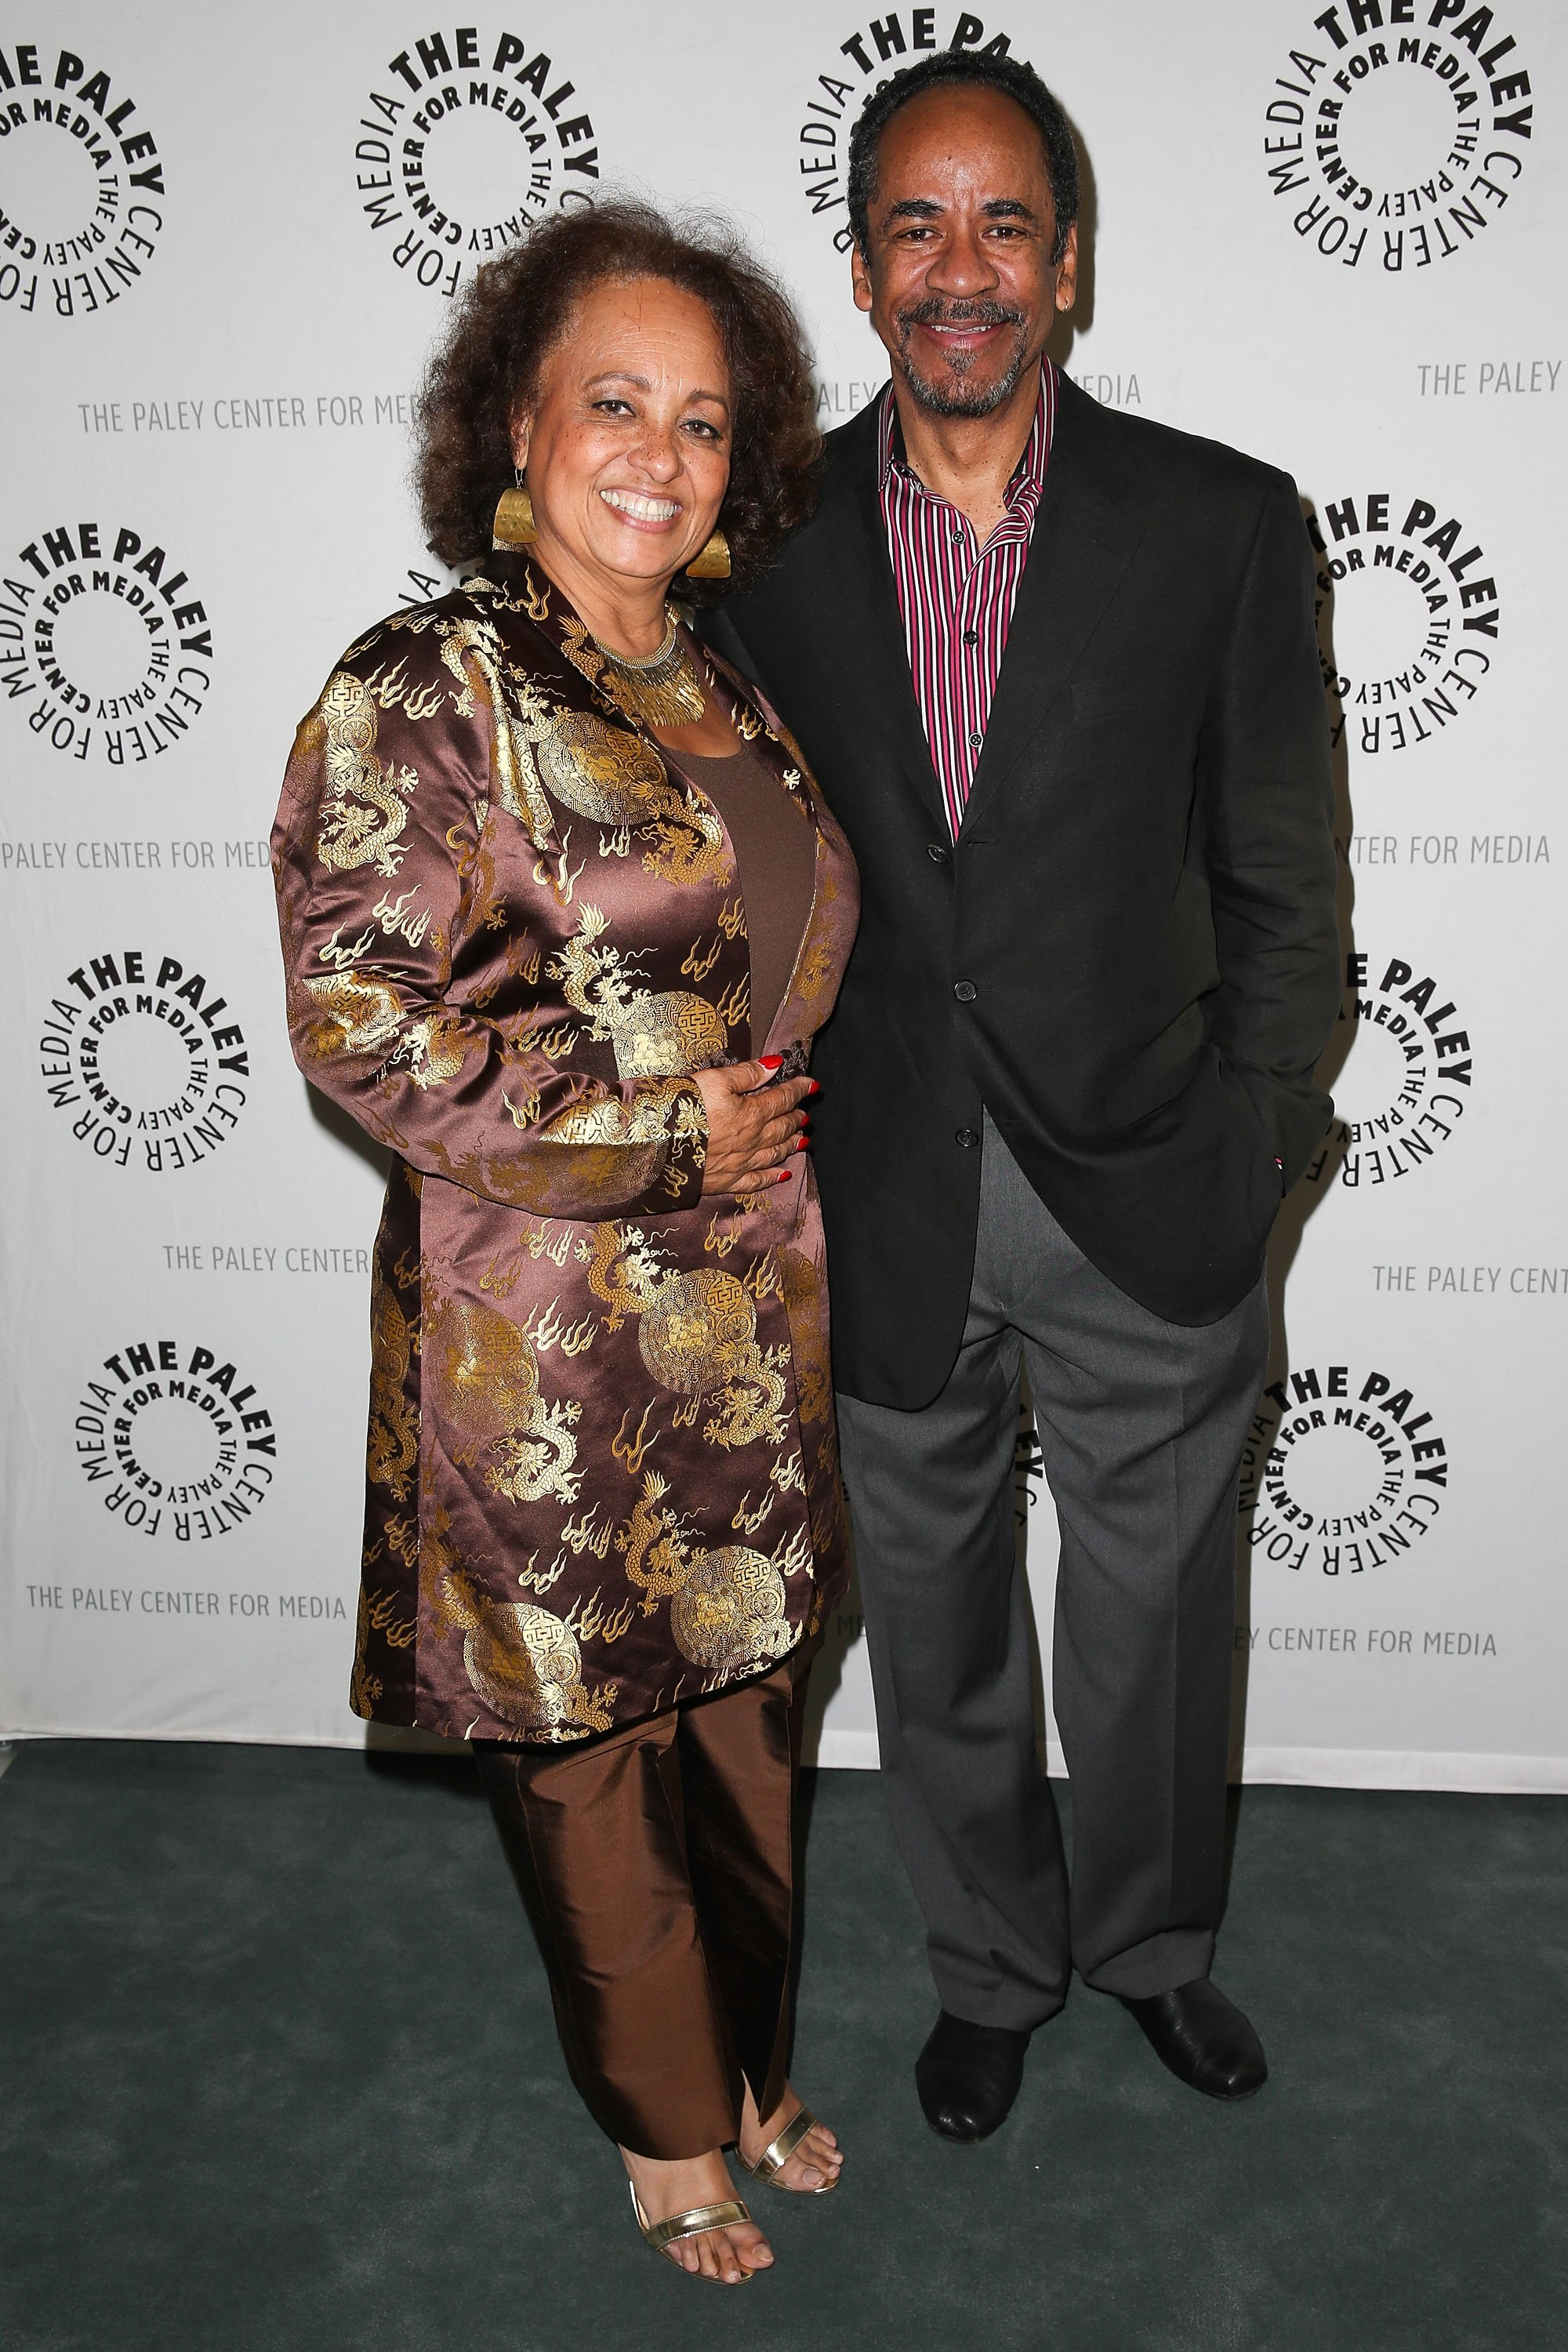 Tim Reid and Daphne Maxwell Reid on June 4, 2014 in Beverly Hills, California | Photo: Getty Images/Global Images Ukraine